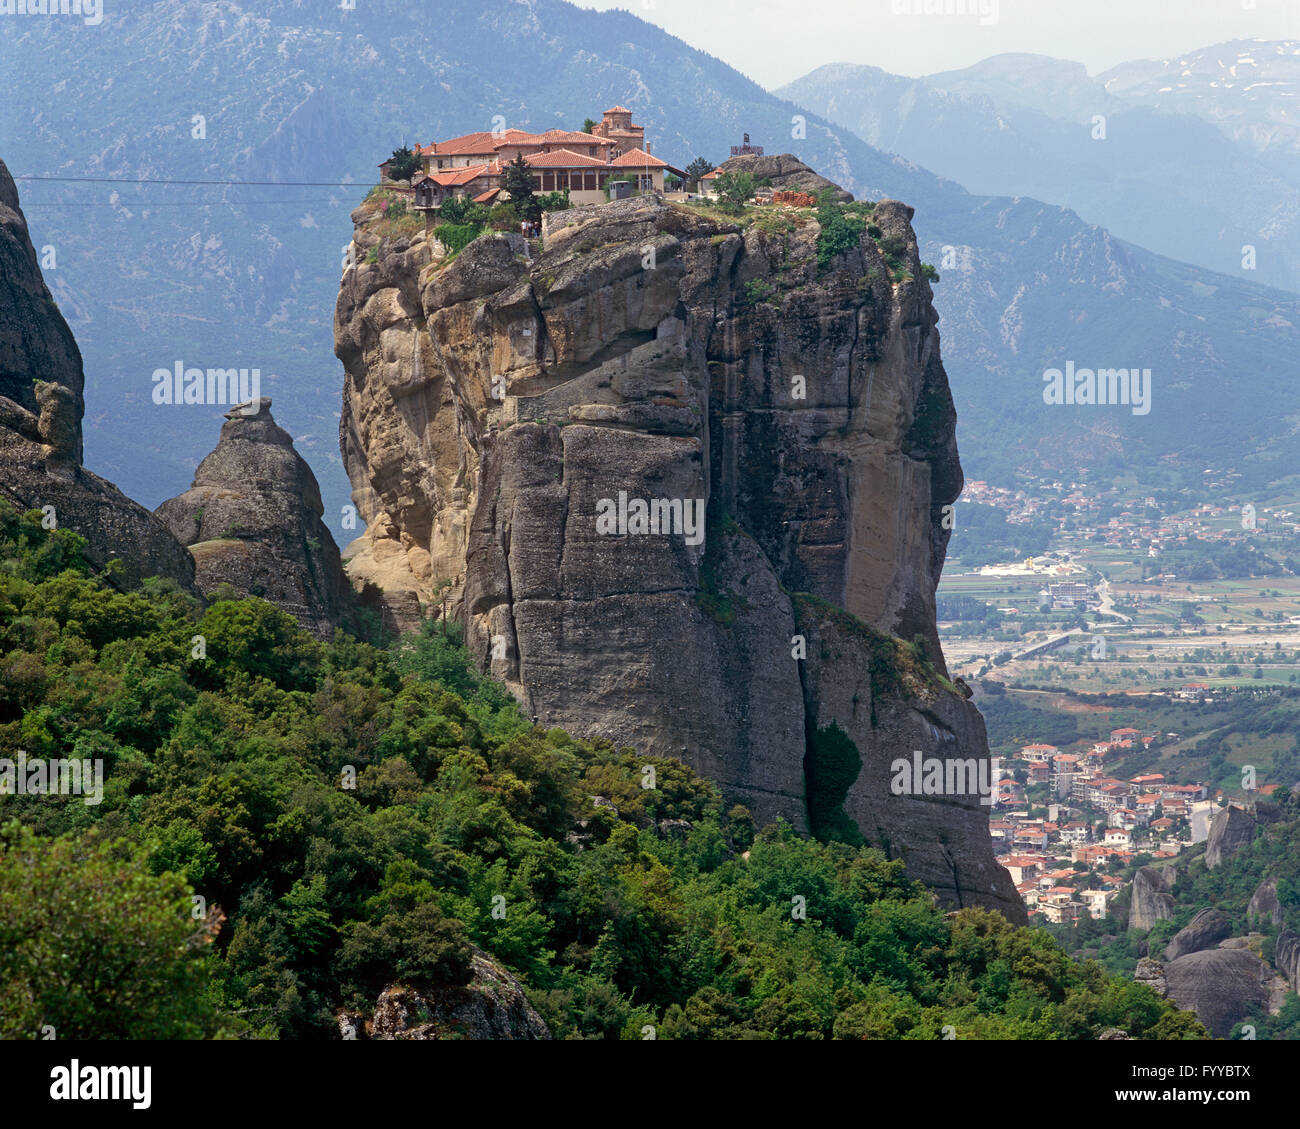 Houses on  a tall rocky hill, outside - Stock Image